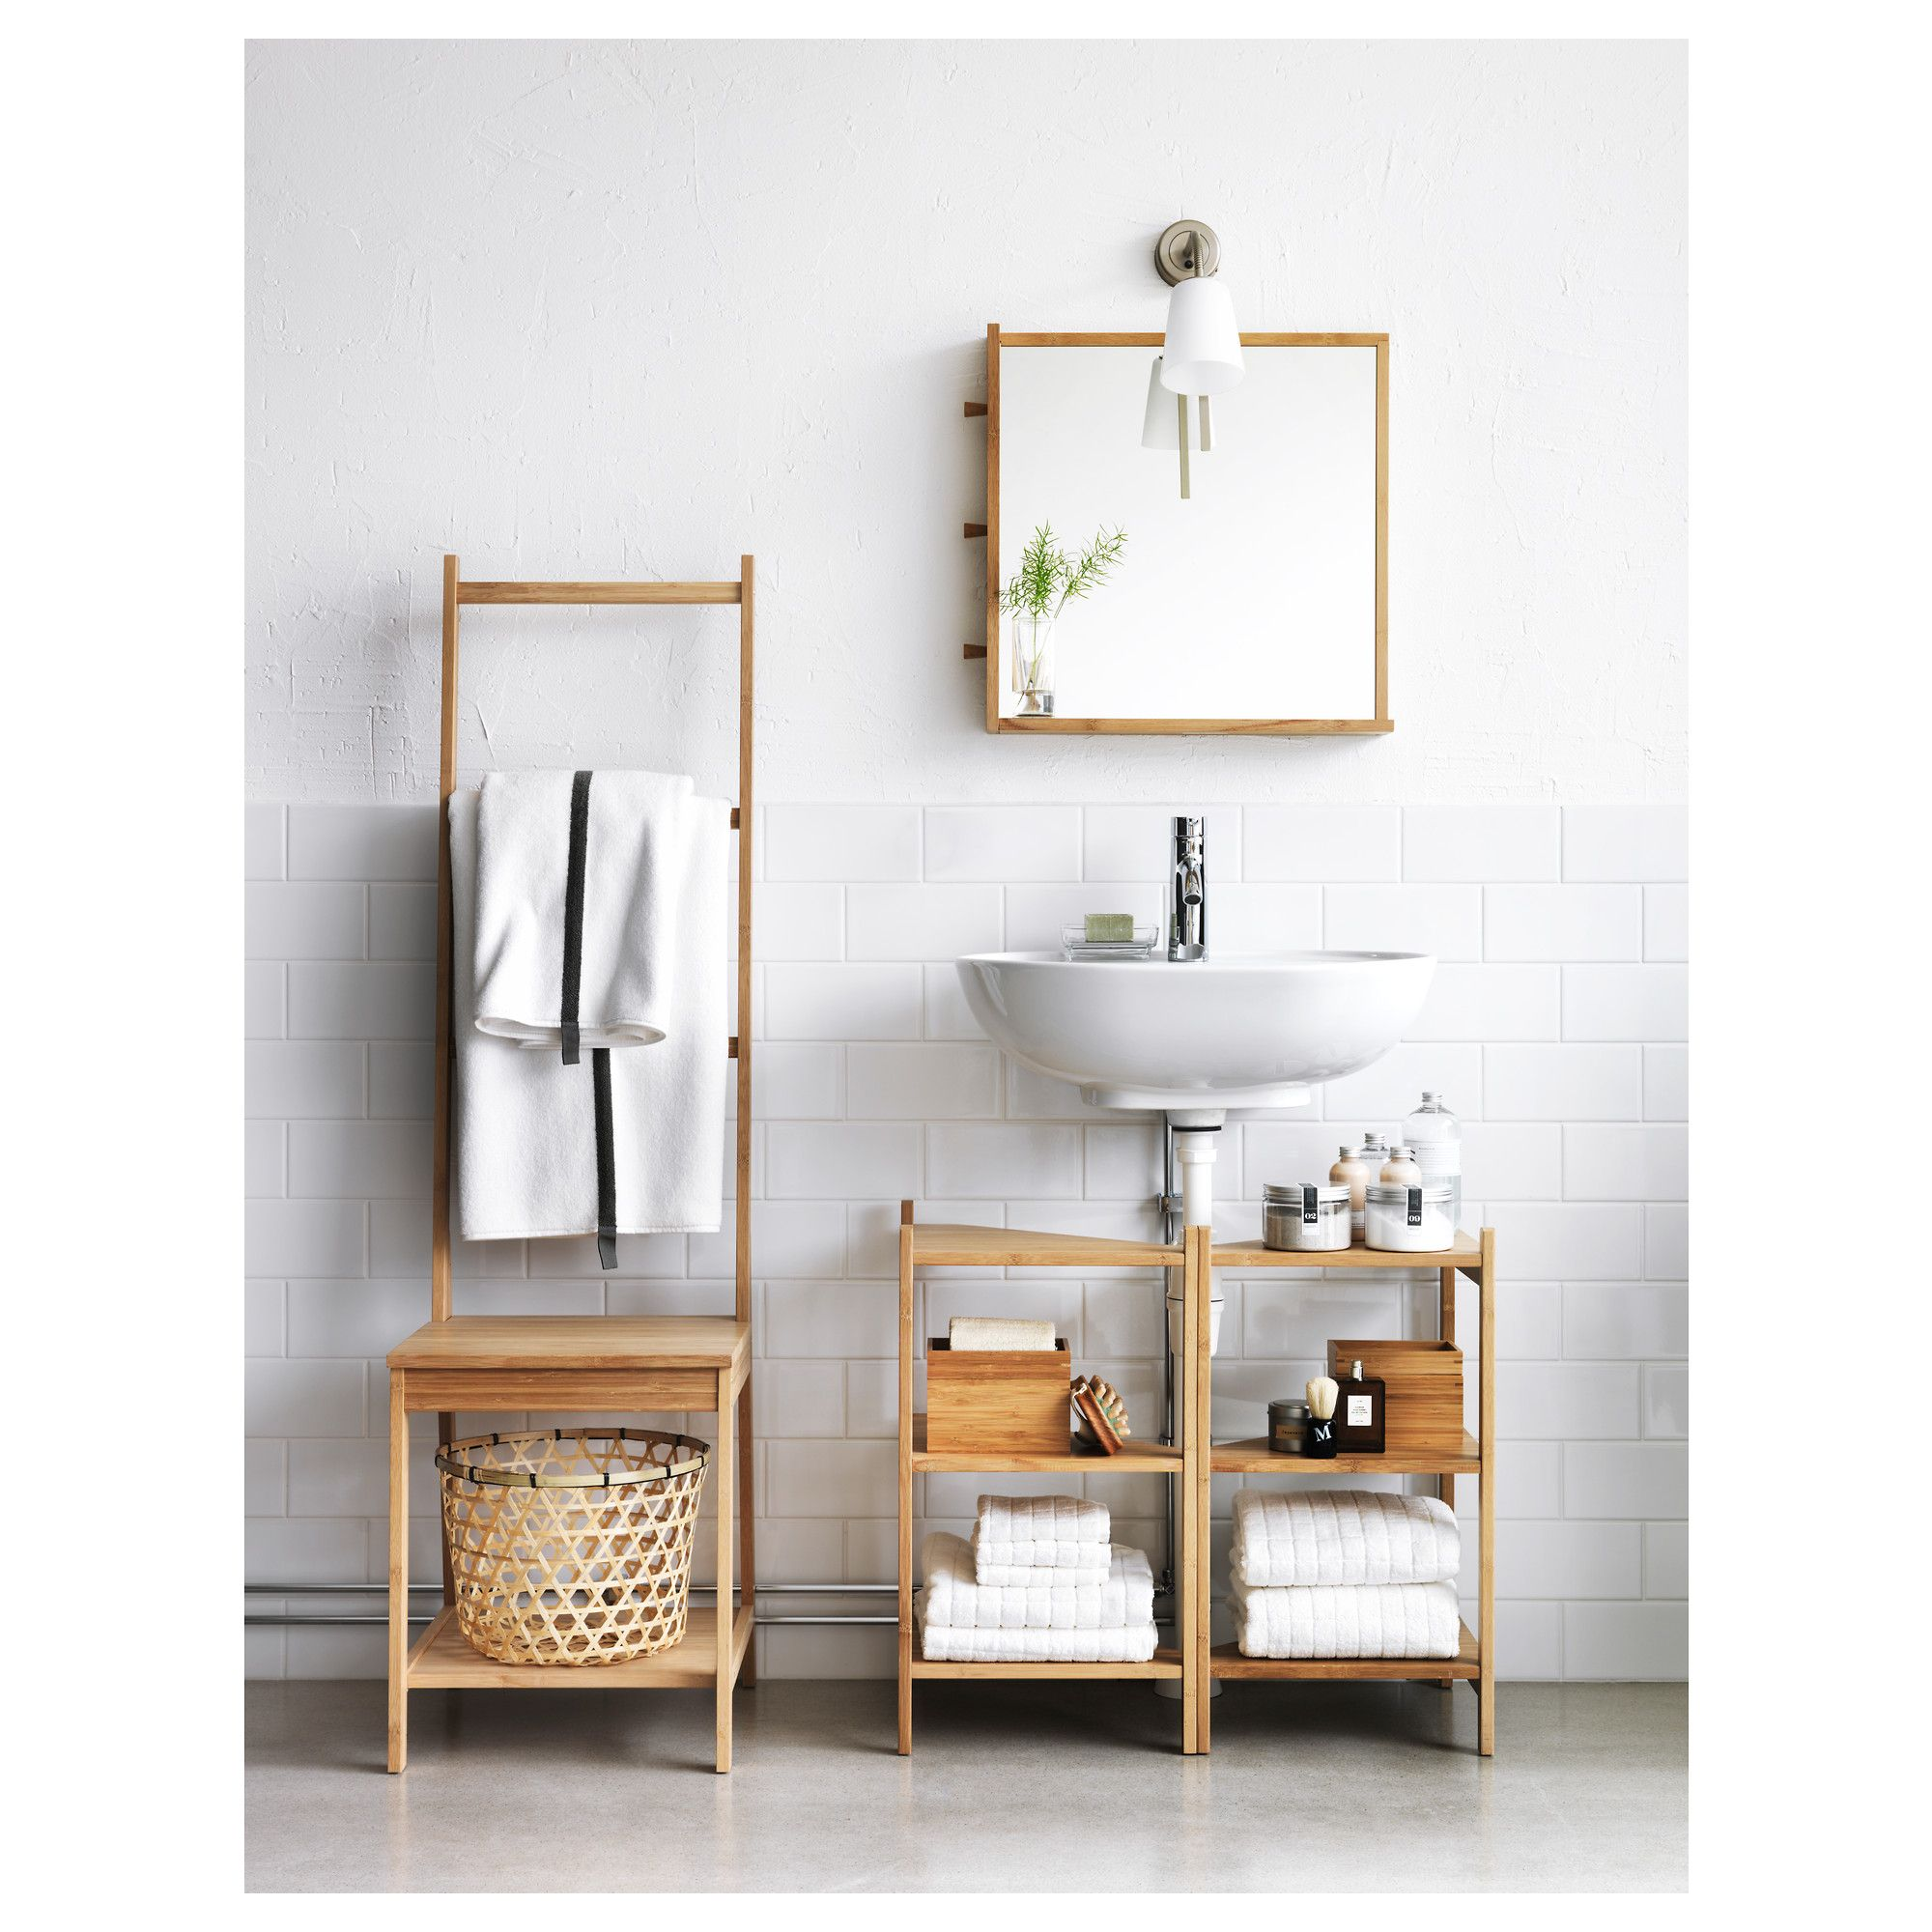 IKEA+launches+RÅGRUND+collection+made+from+bamboo | IKEA | Pinterest ...